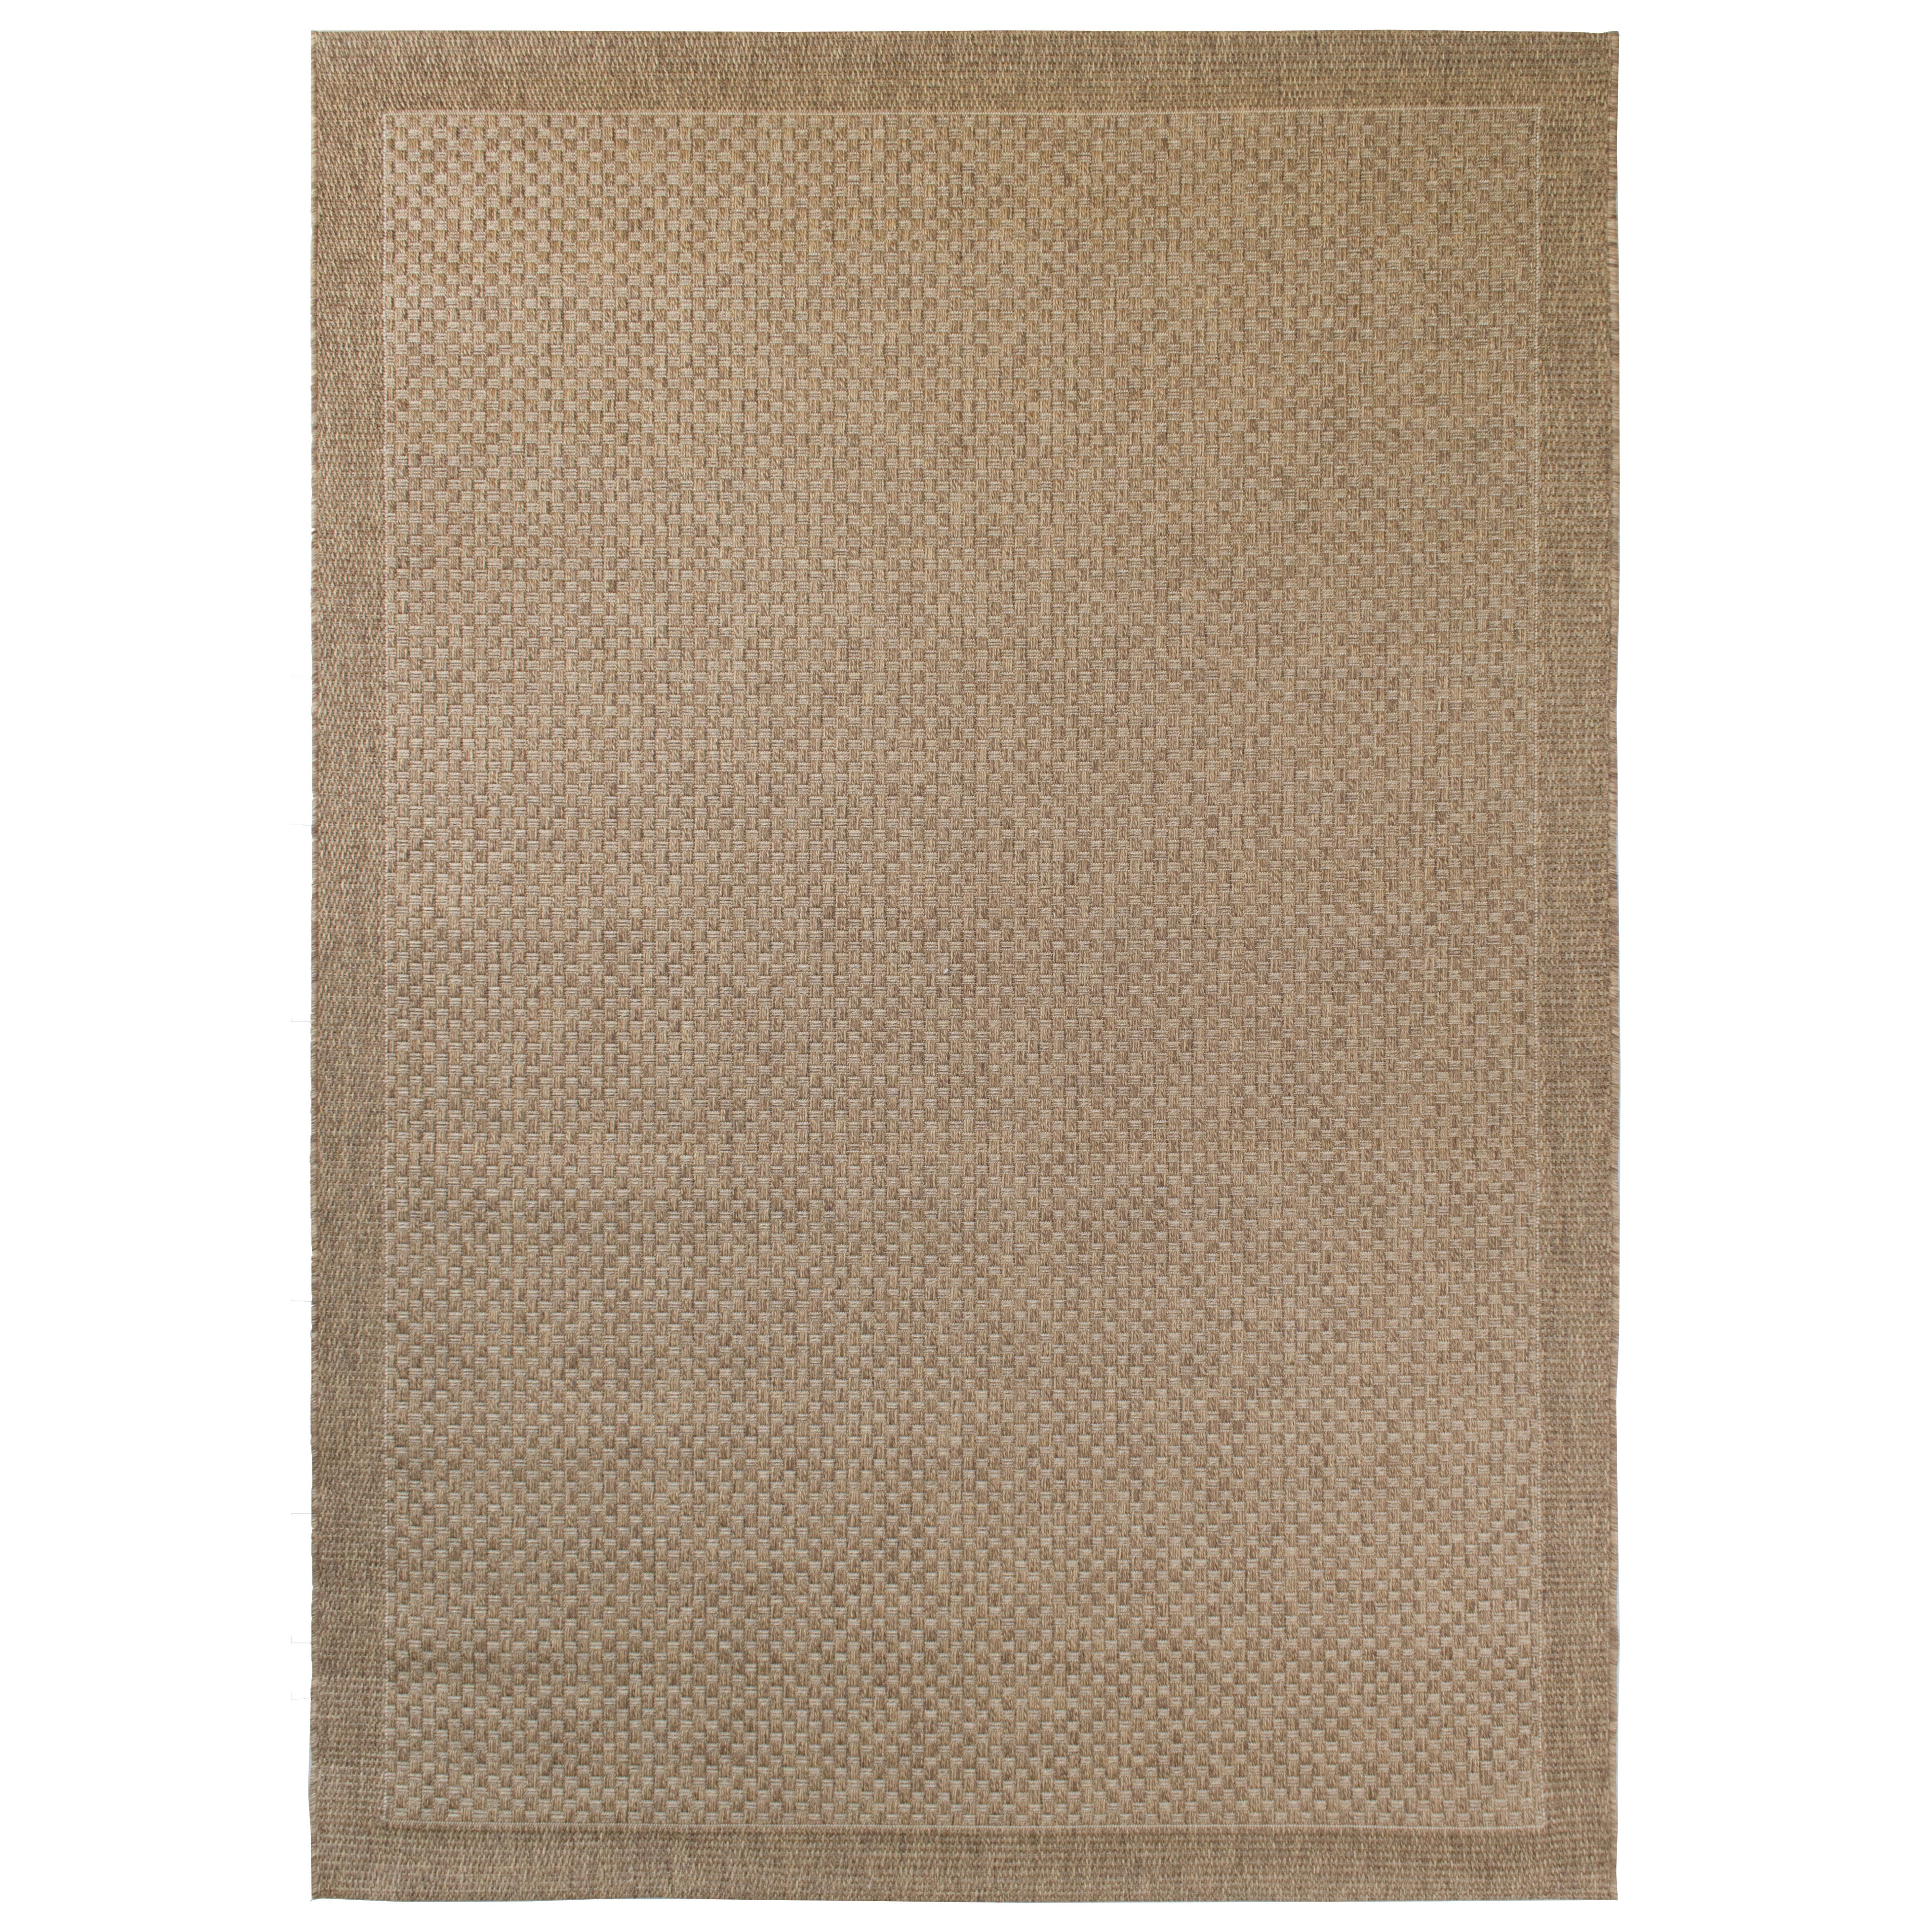 Balta Brown Indoor Outdoor Area Rug